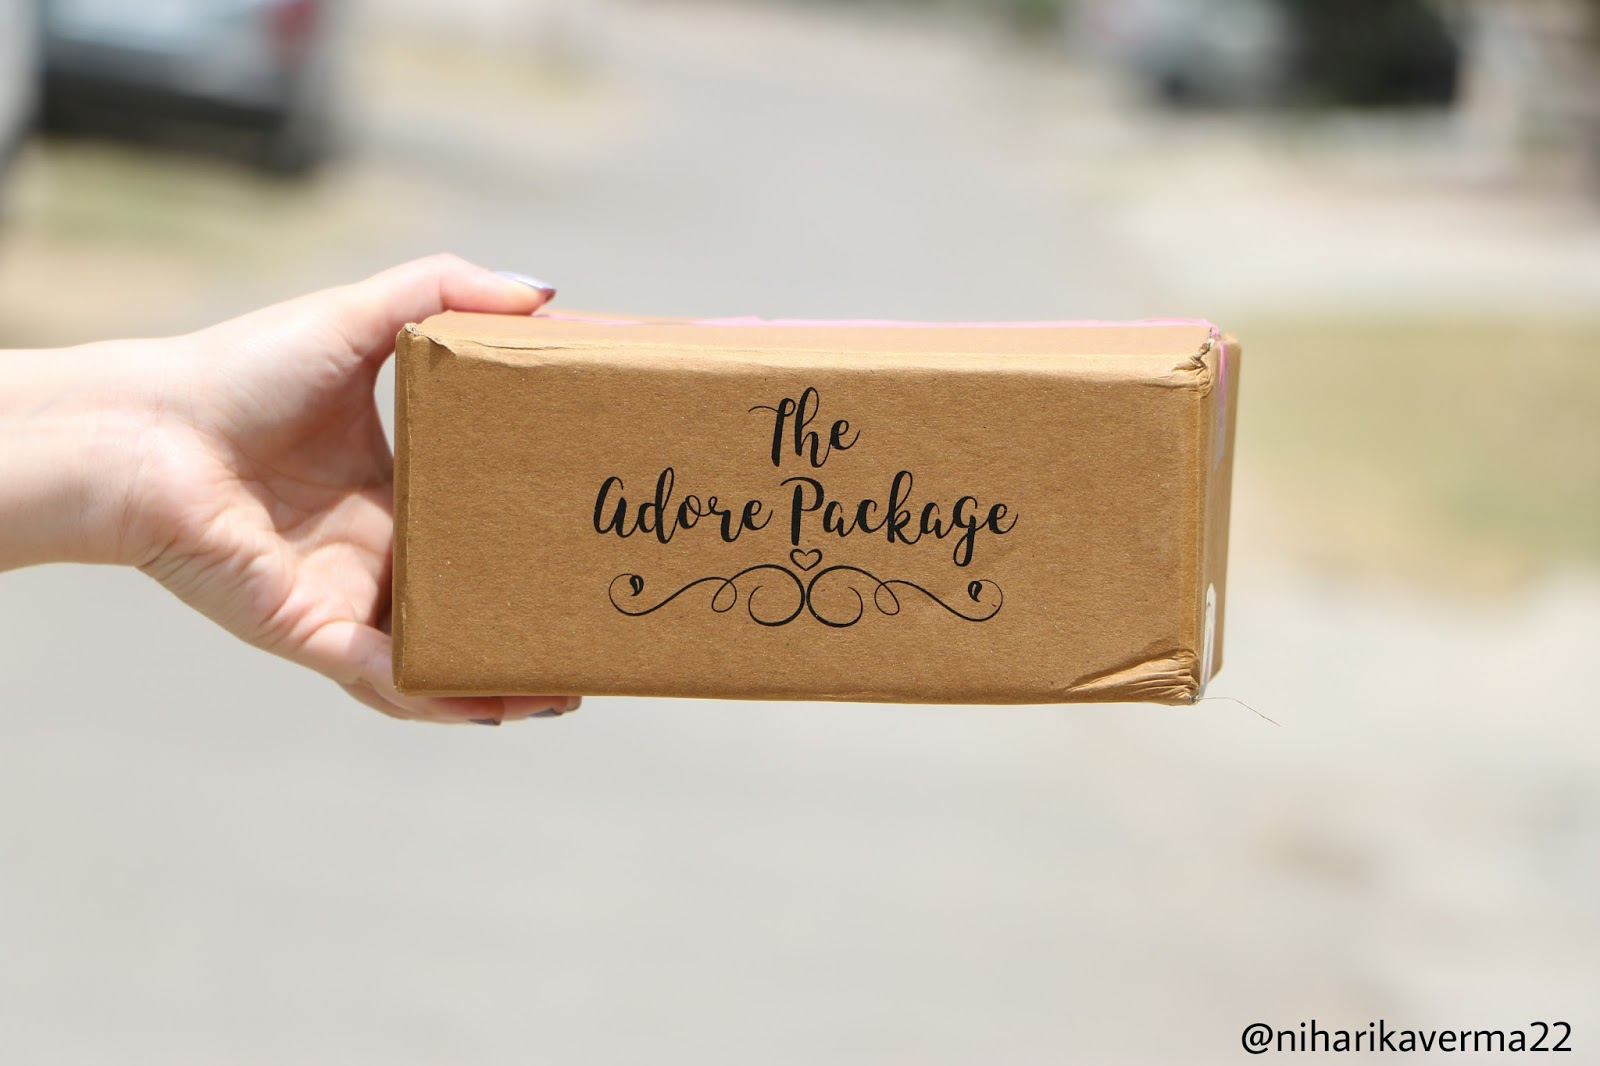 The Adore Package Beauty Box